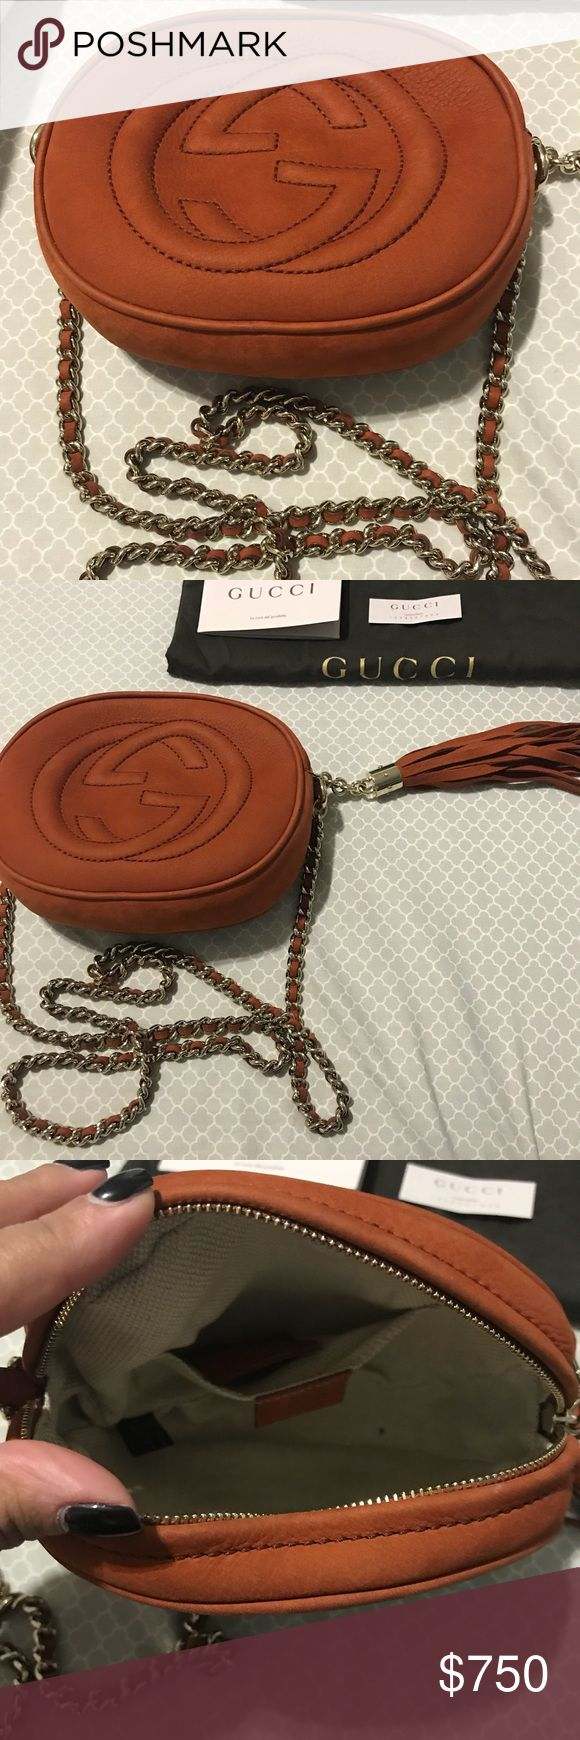 Authentic Gucci Suede Disco Bag Perfect bag for a night out. Fits all your essentials. In almost new condition. Only used a few times and is always stored. Perfect color for fall and winter. Includes dust bag. Price is negotiable. Gucci Bags Crossbody Bags